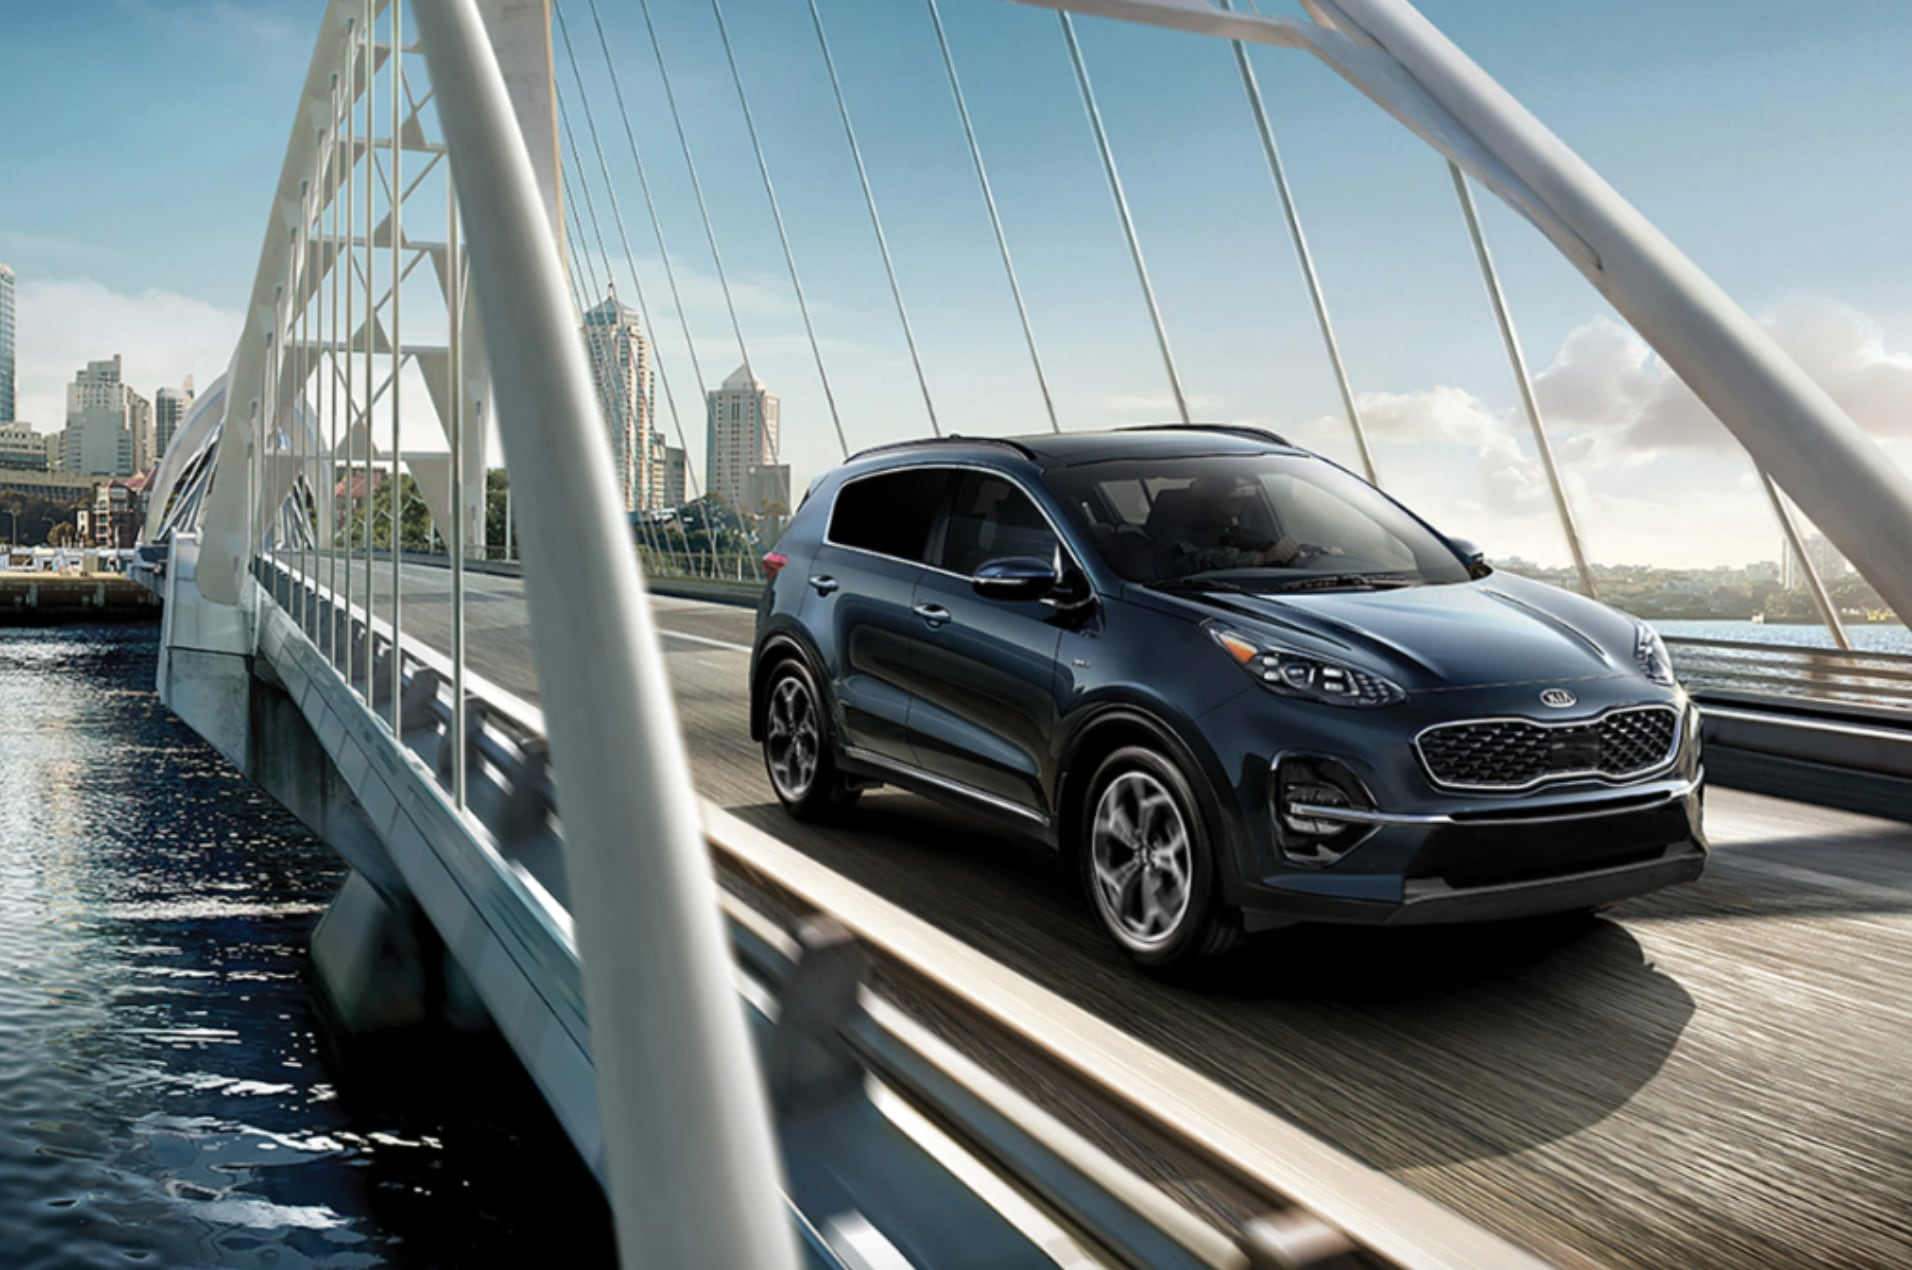 2021 Kia Sportage - Huntington Beach, CA